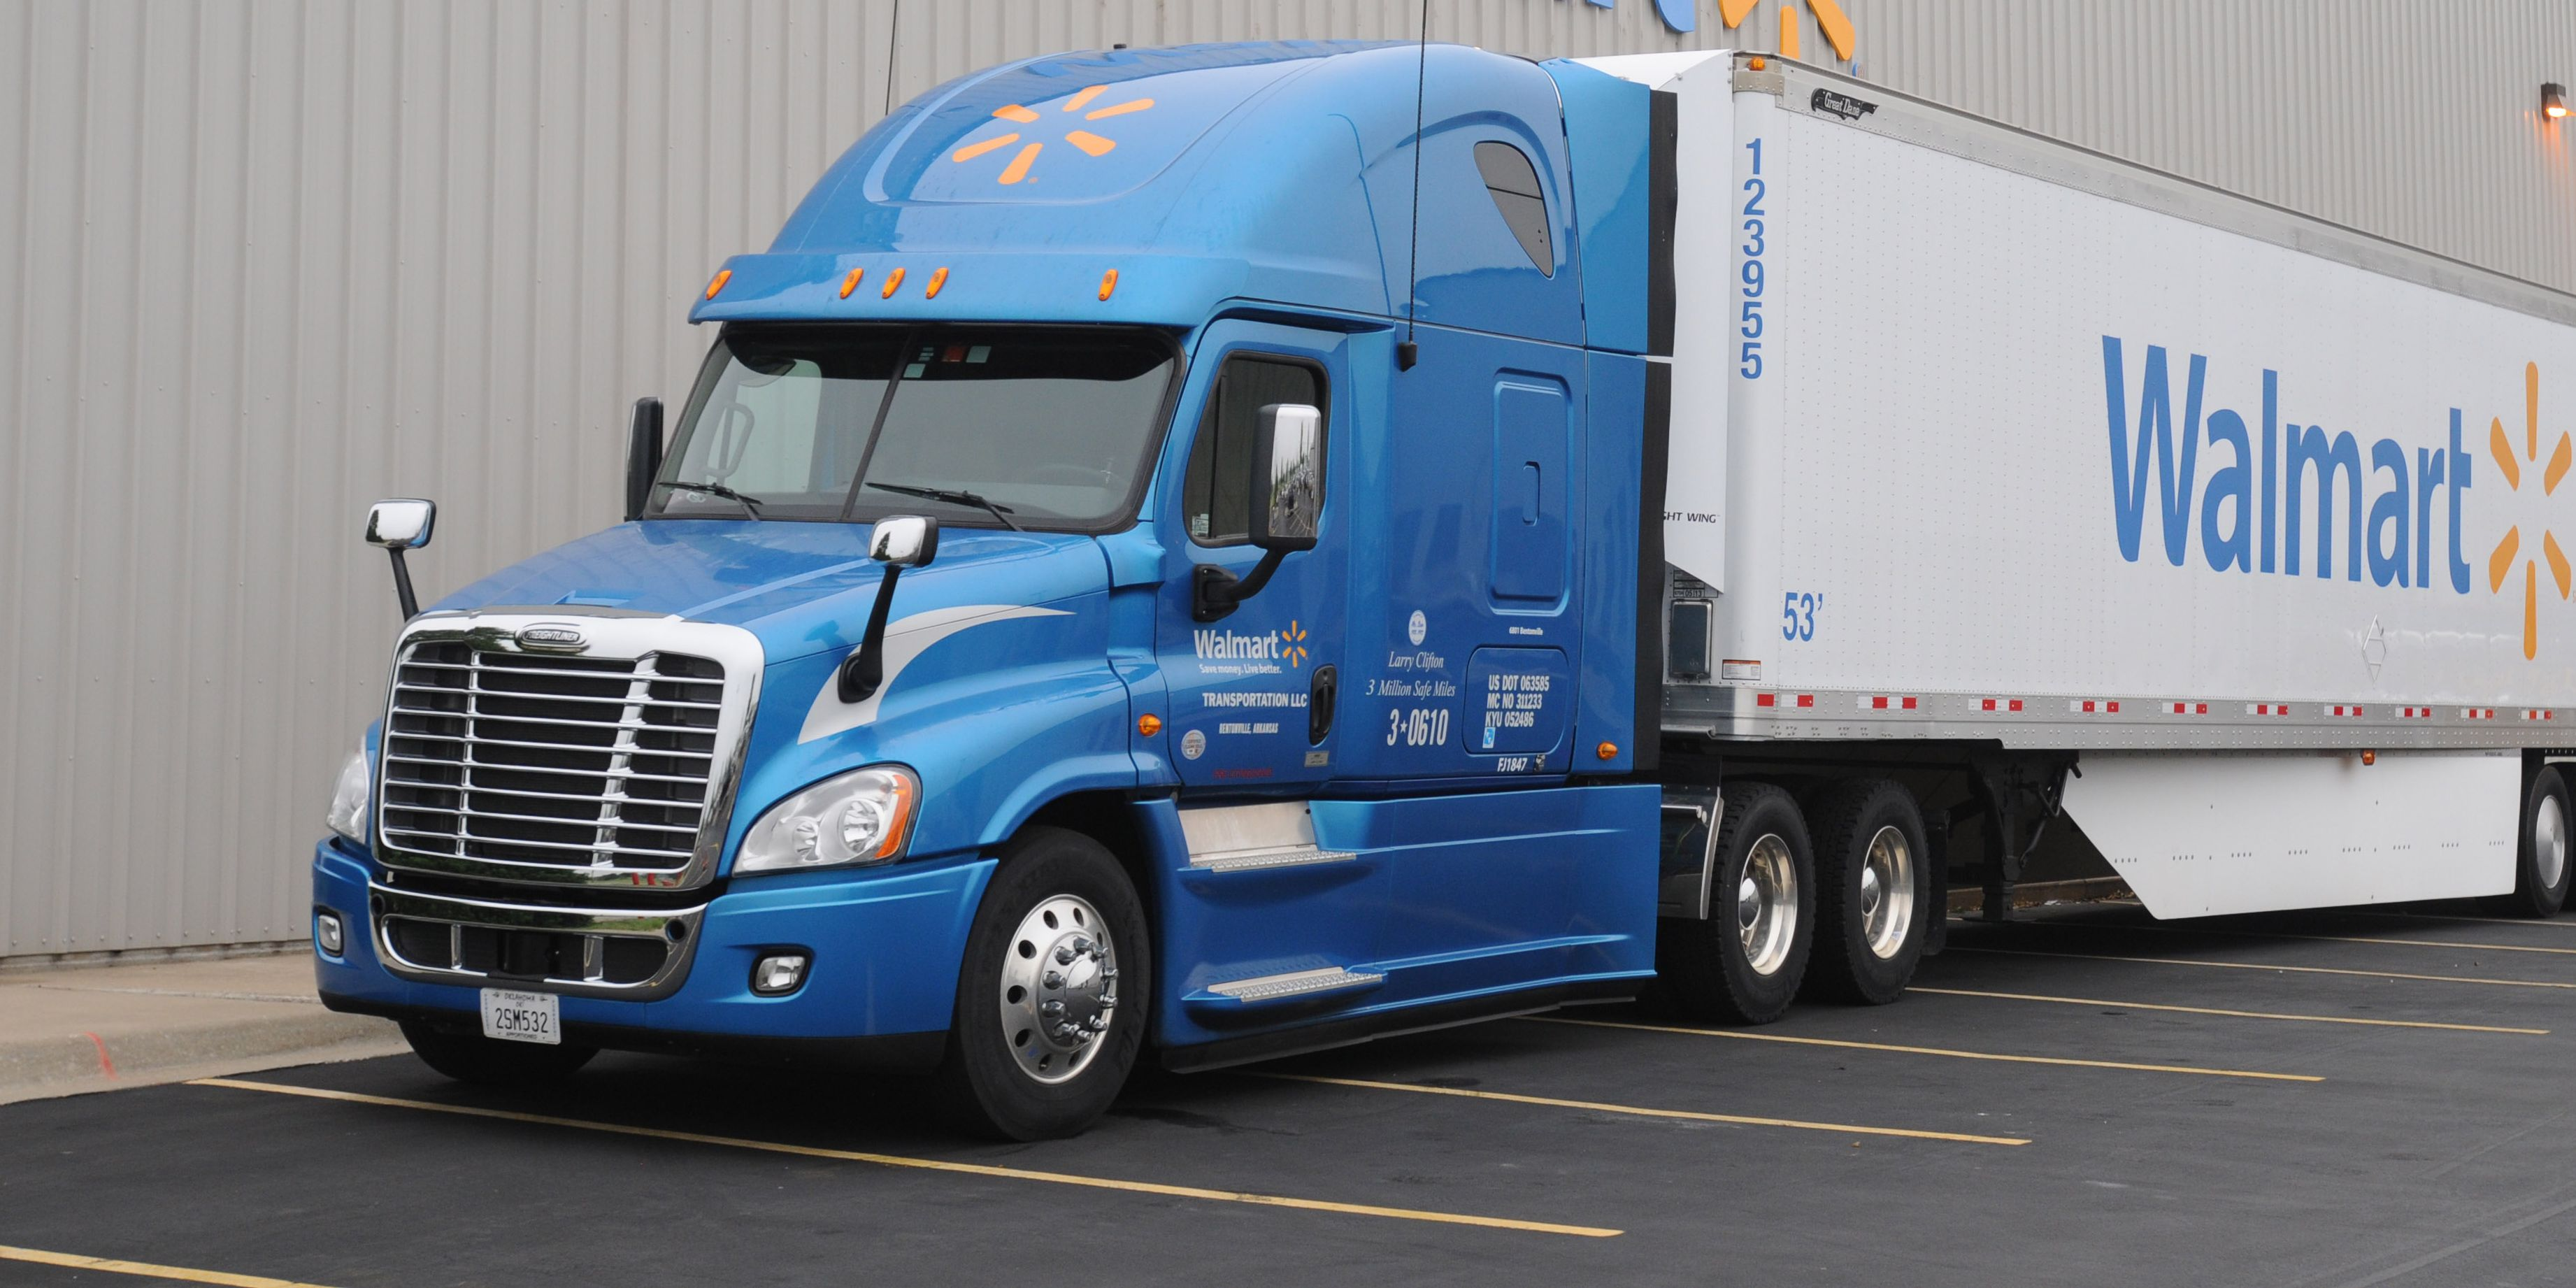 Walmart wants to hire more truck drivers, and they're increasing pay to do it